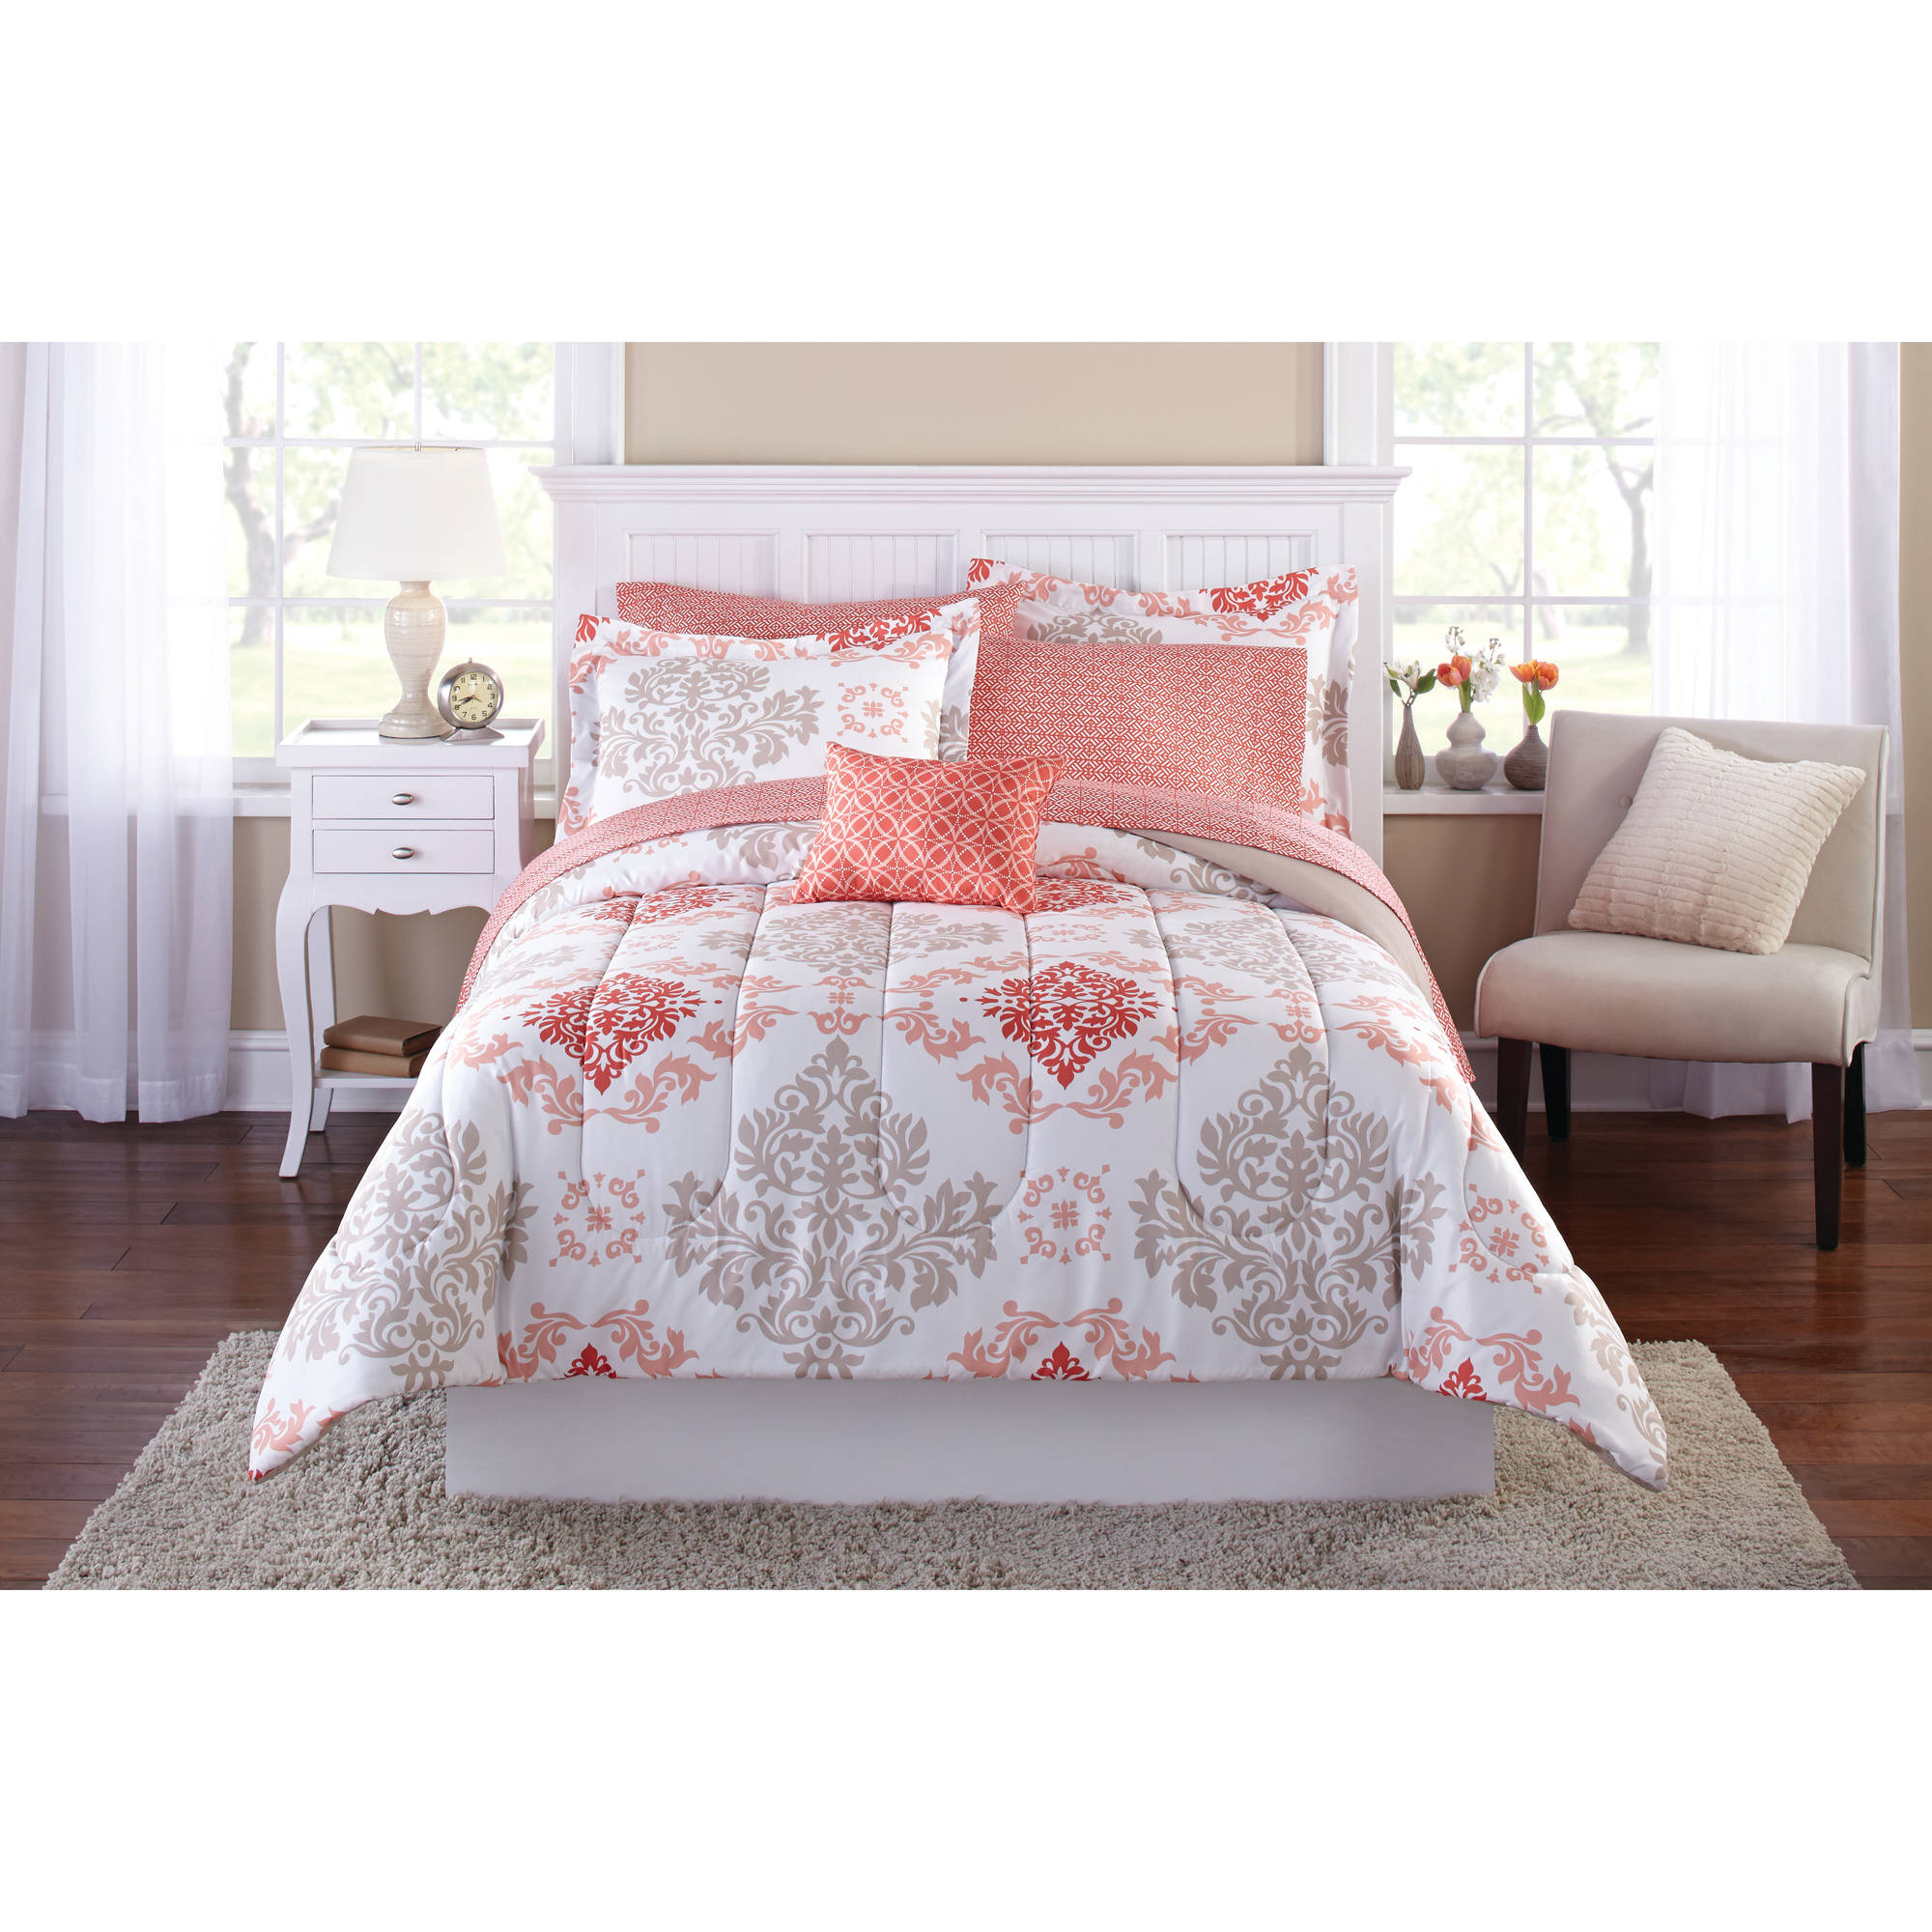 Mainstays Coral Damask Bed In A Bag Bedding Set   Walmart.com